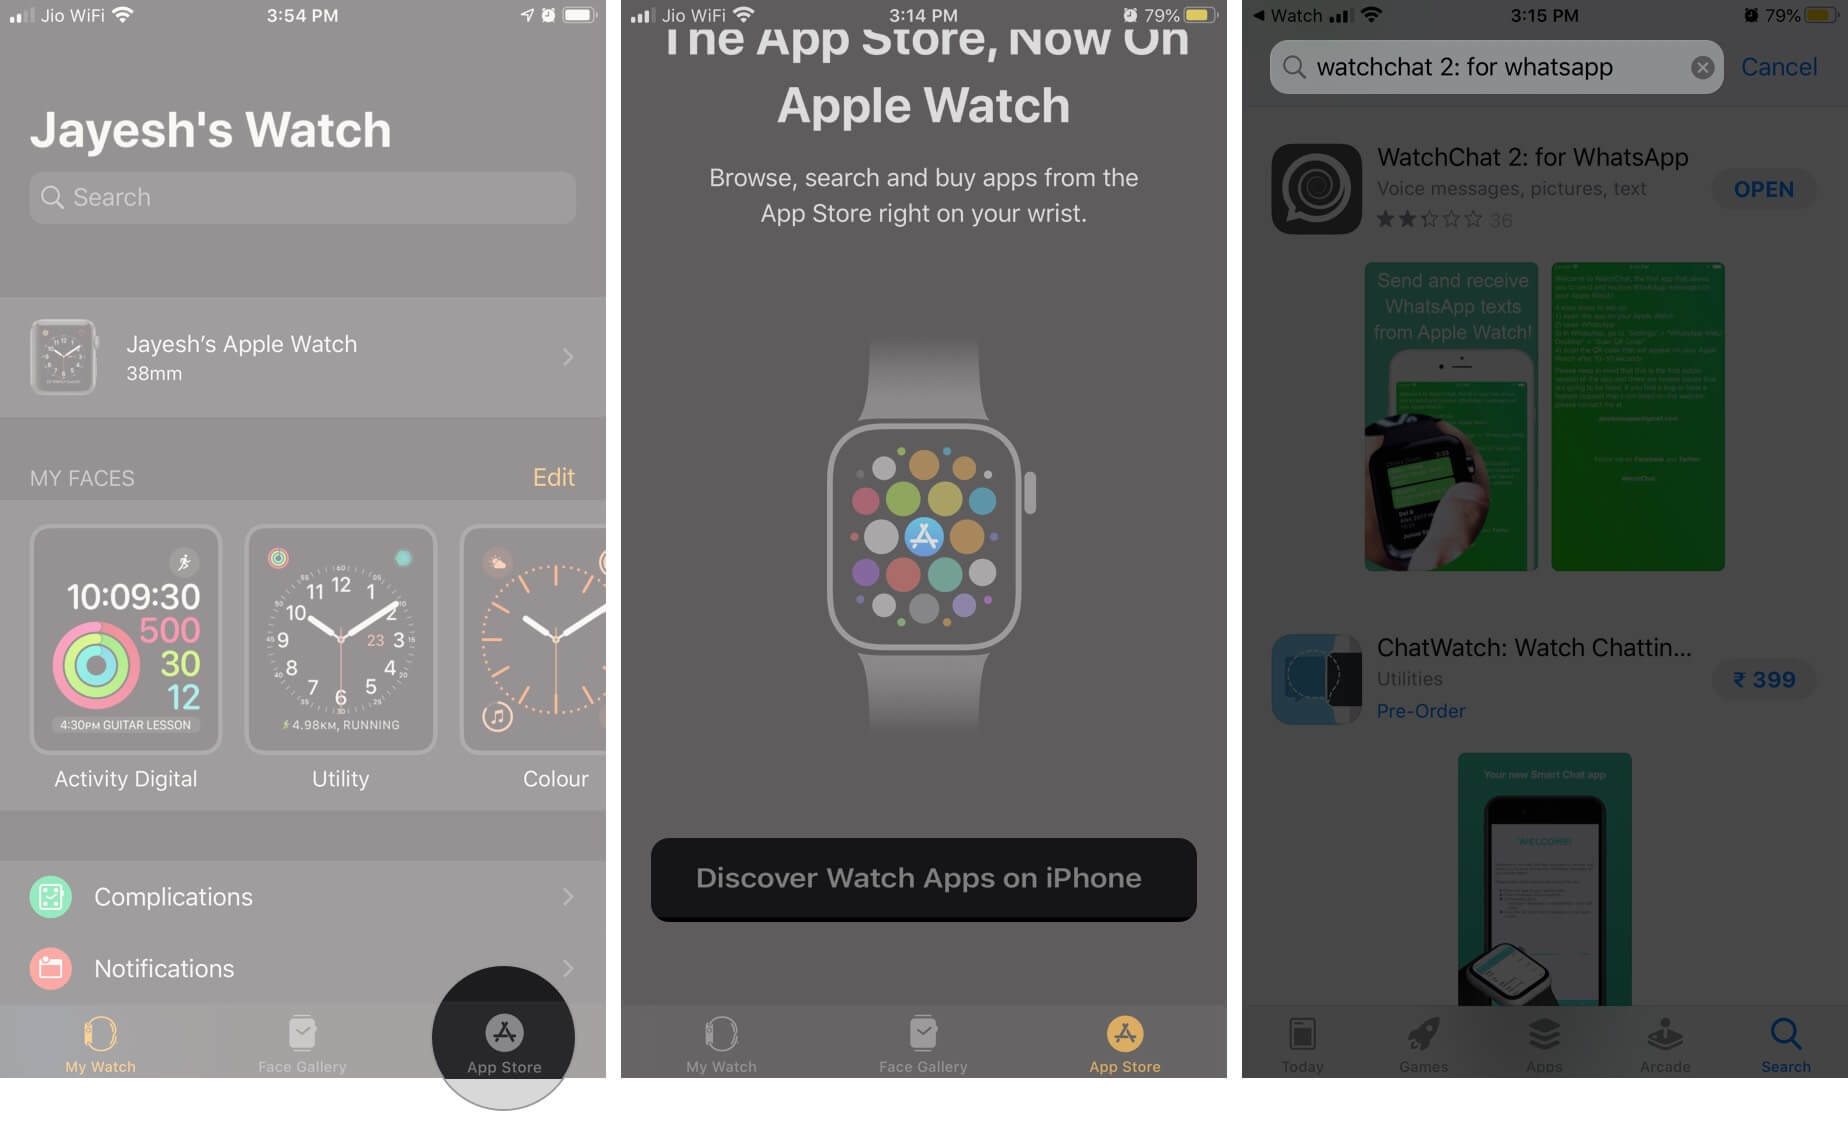 Open Watch App and Select App Store Then Tap Discover Watch Apps on iPhone and Search WatchChat 2